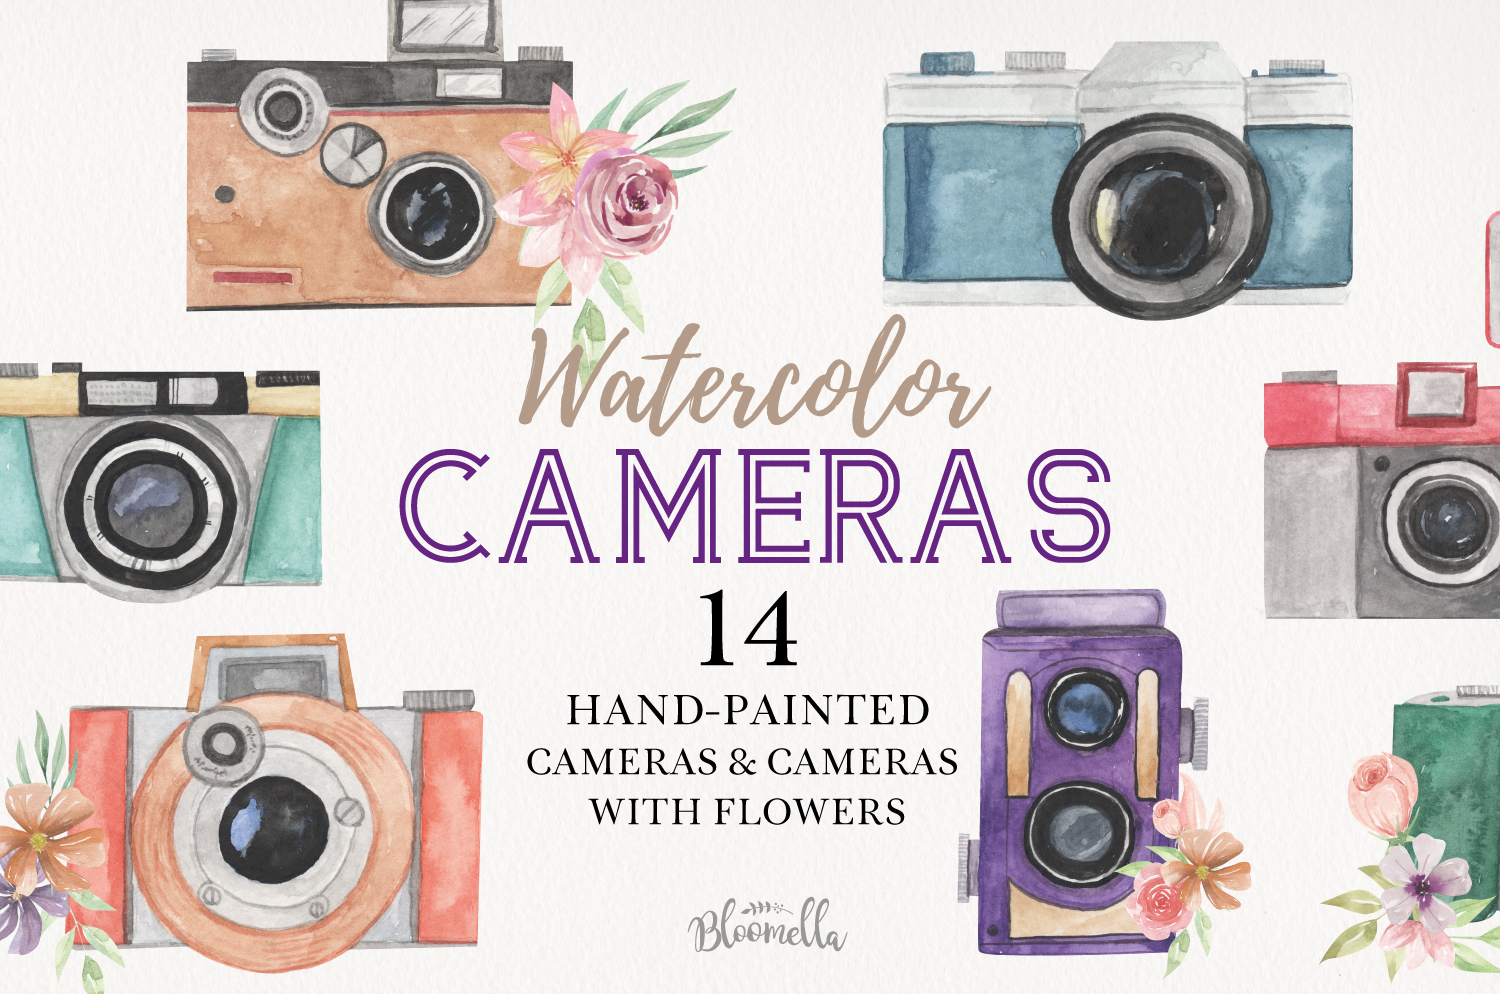 Cameras Watercolor Elements Photo Flowers Photography example image 1